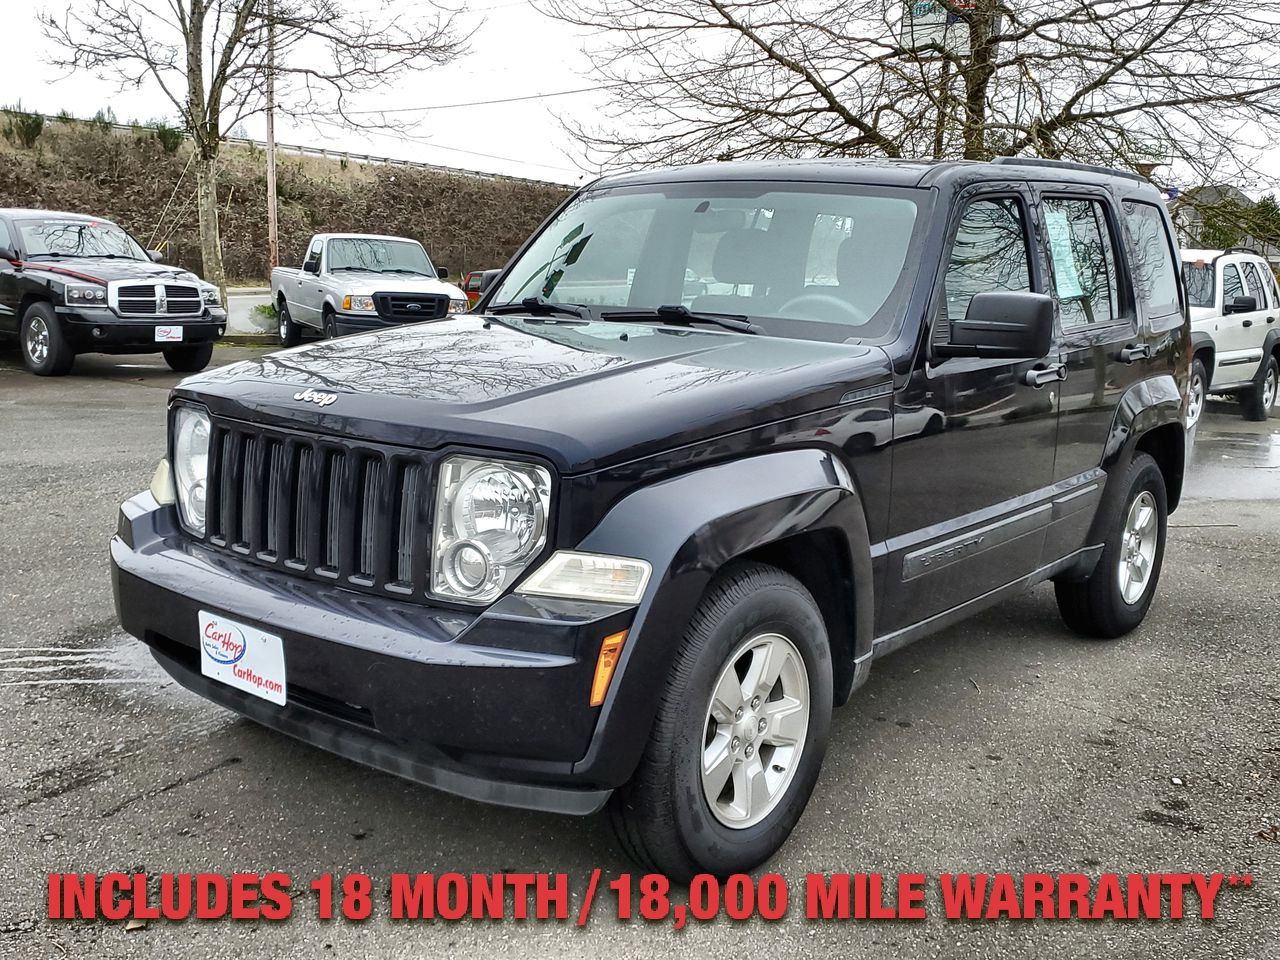 Pre-Owned 2011 JEEP LIBERTY Sport SUV